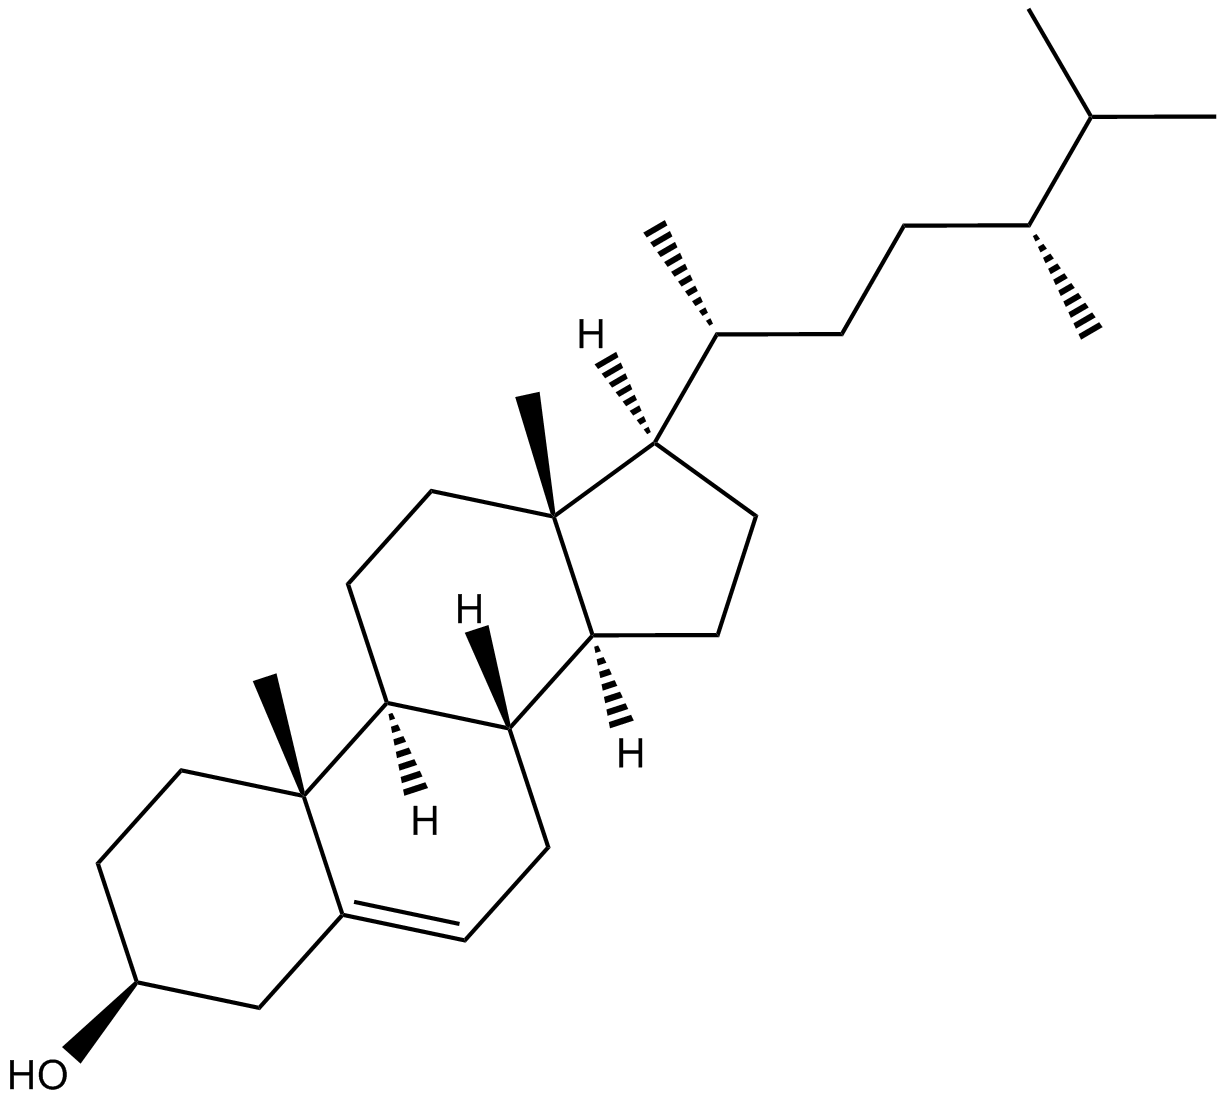 24α-methyl Cholesterol